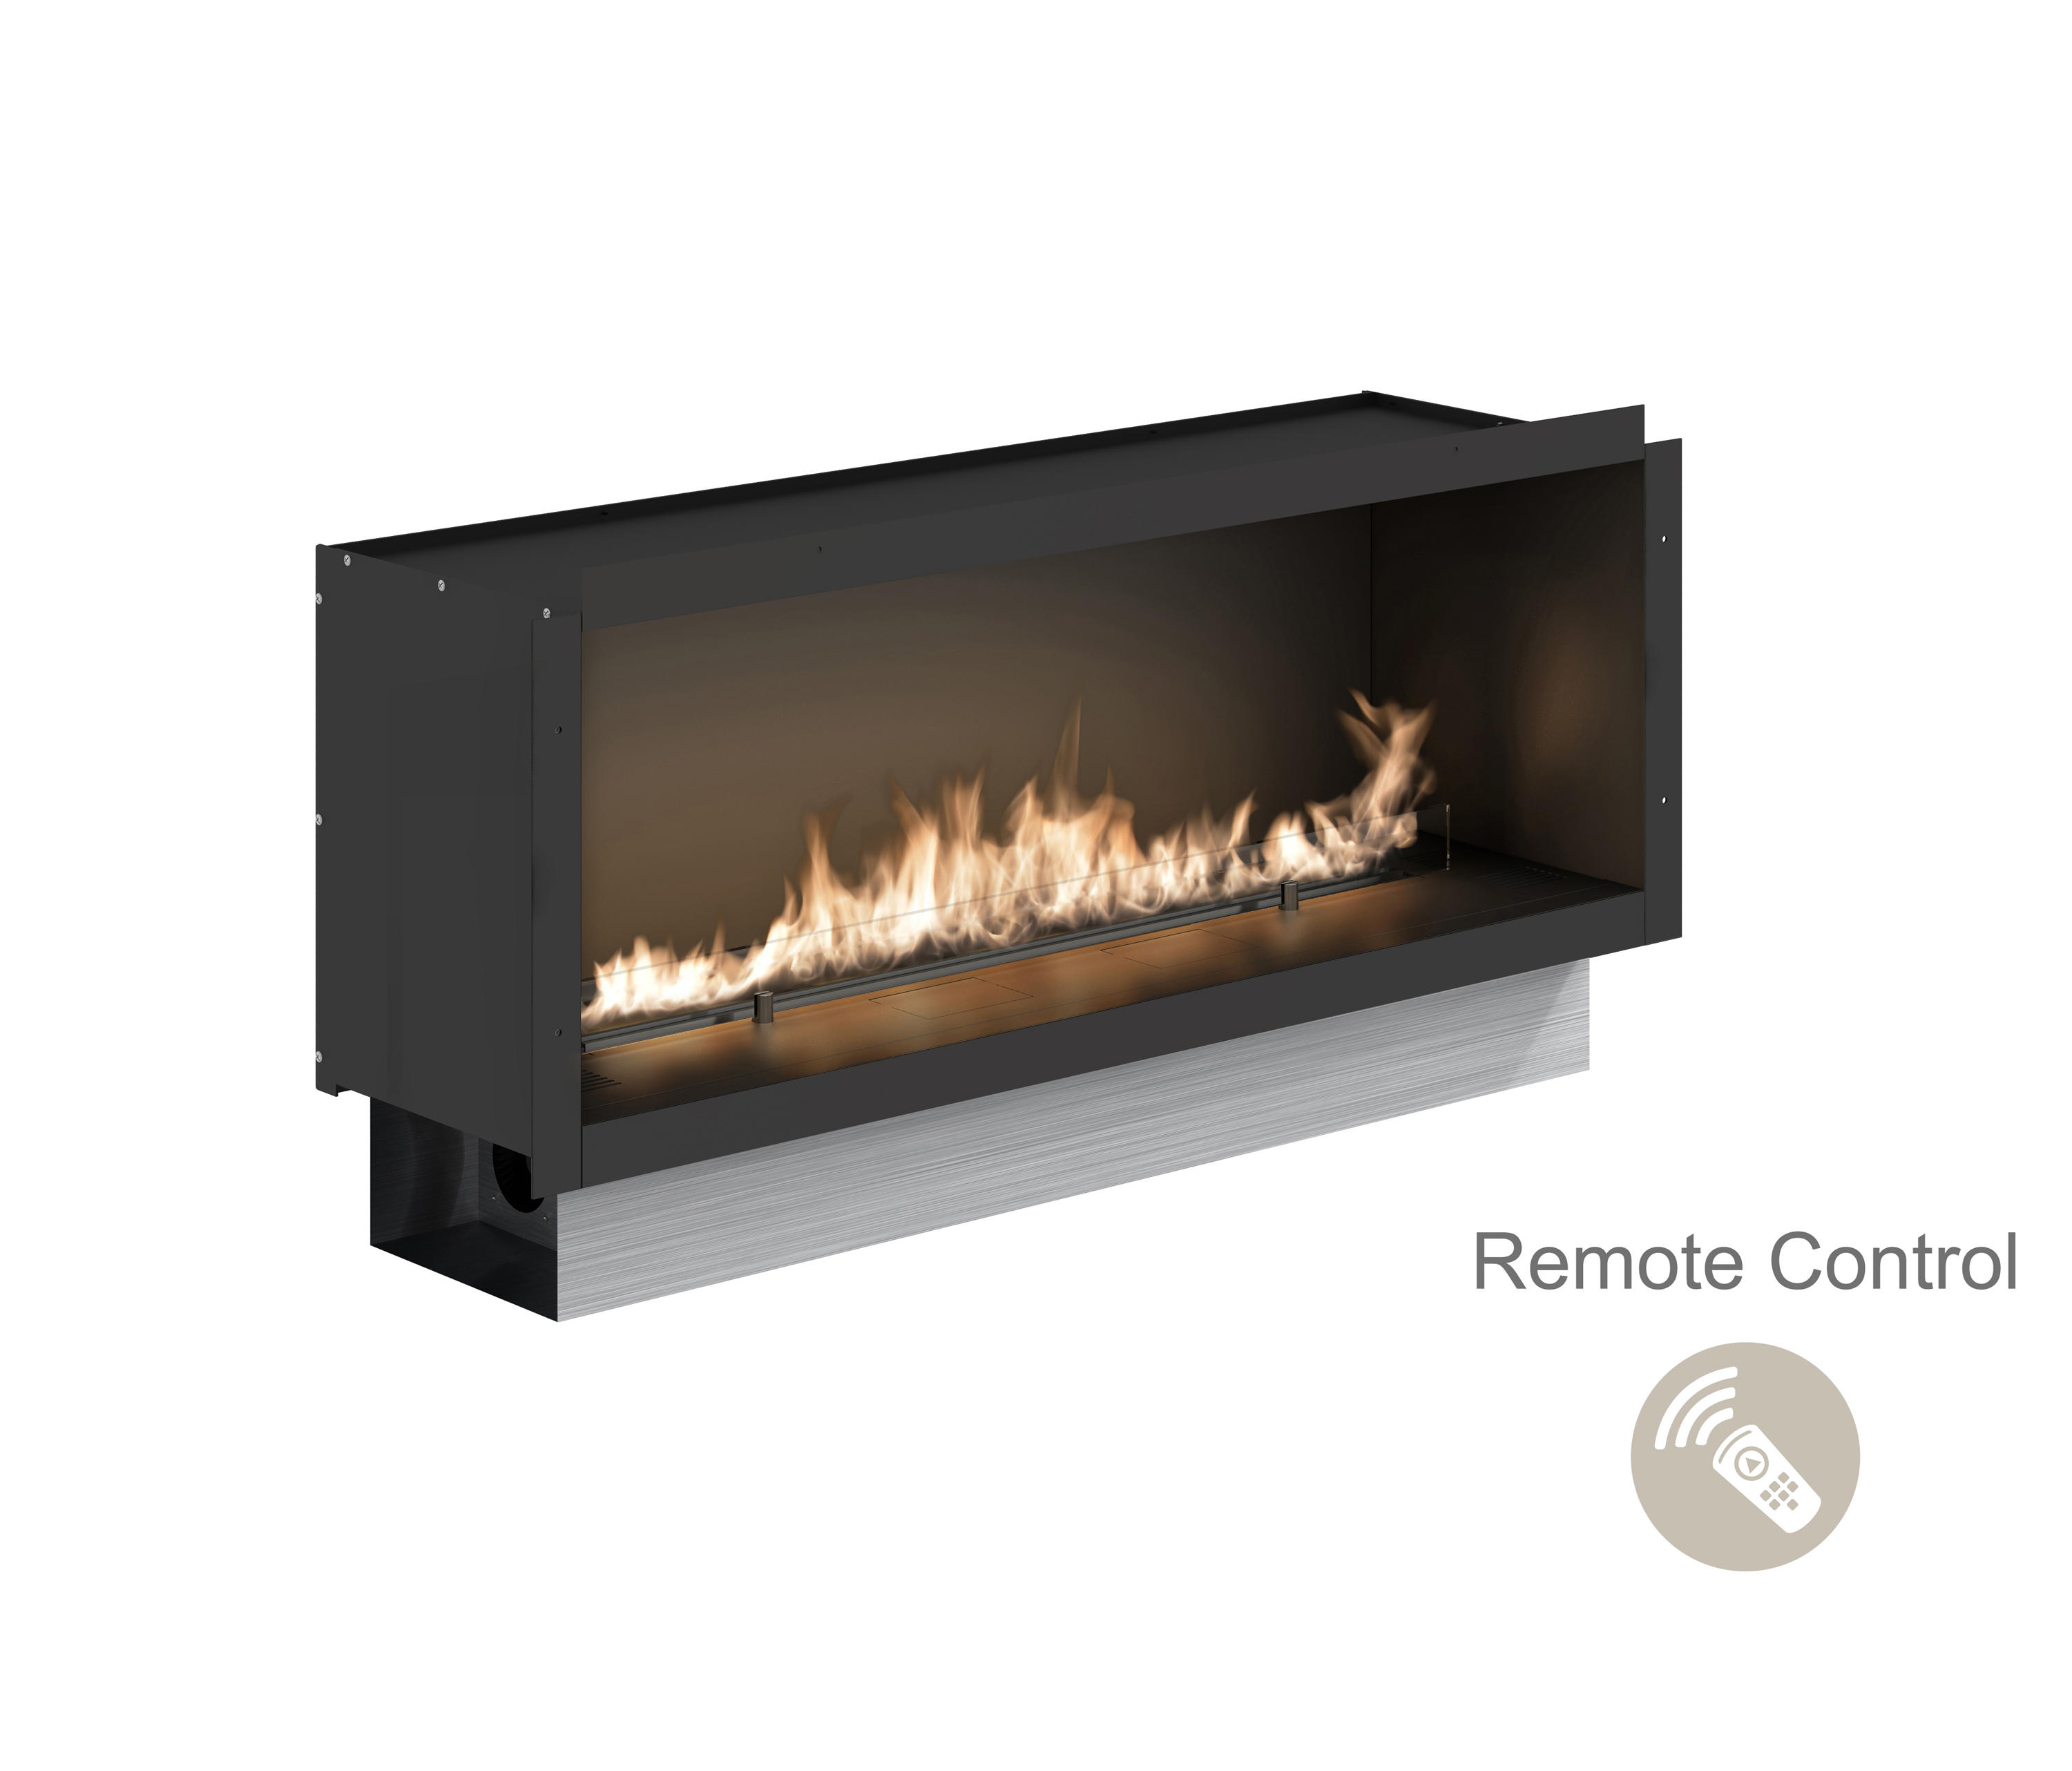 youtube display mini nice digital led peaceful homely pitch ideas fireplace living pixel video amazing design